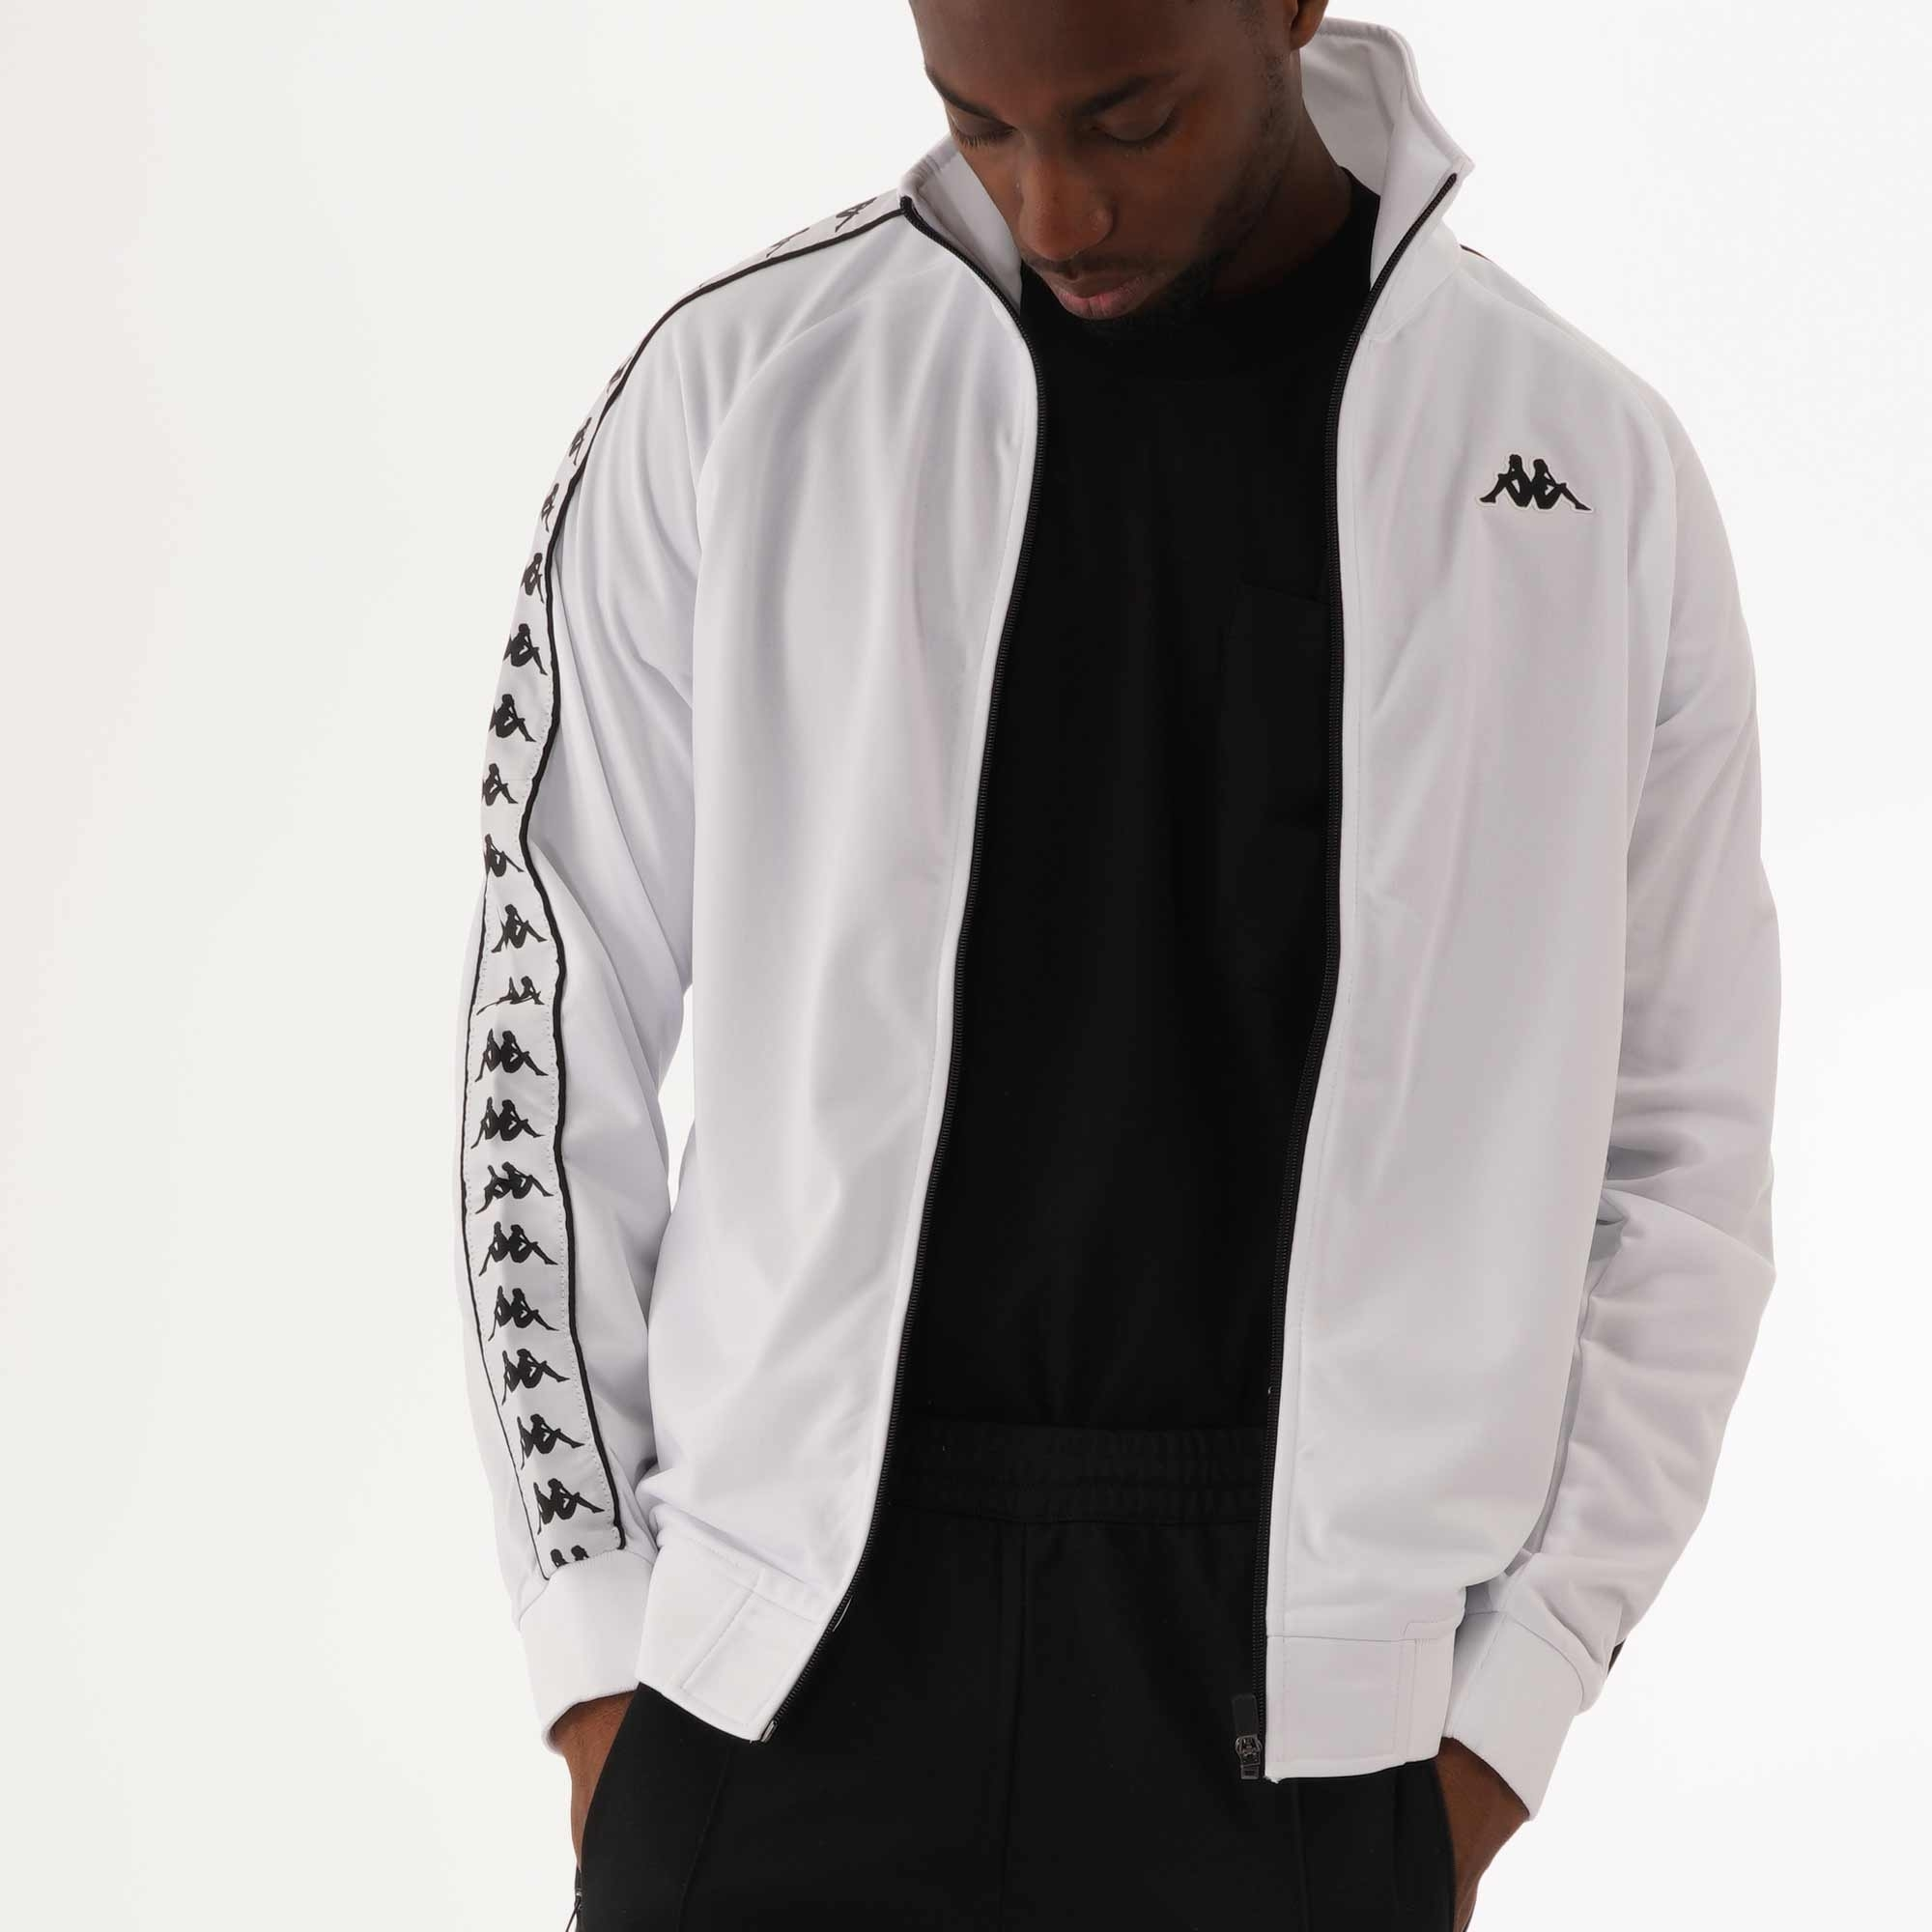 3a74d685 Banda Anniston Track Top - White